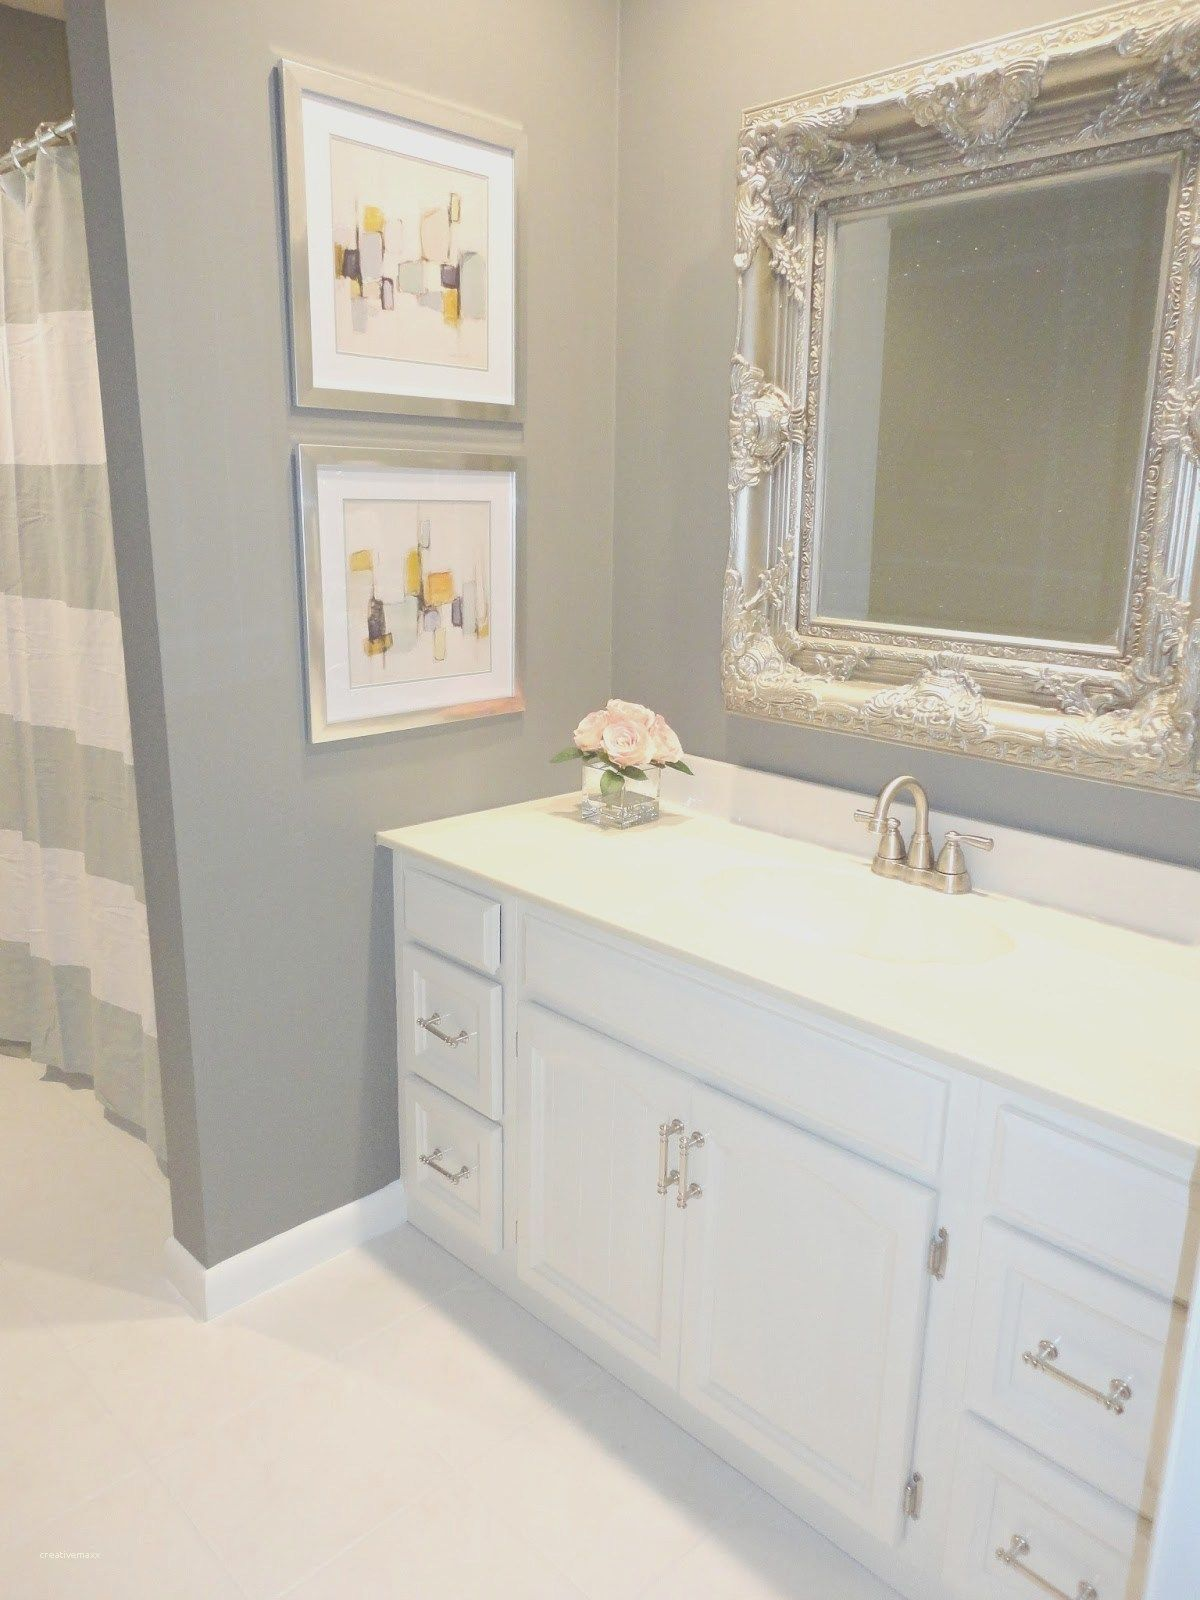 Small Bathrooms On A Budget - Awesome Small Bathrooms On A Budget ...